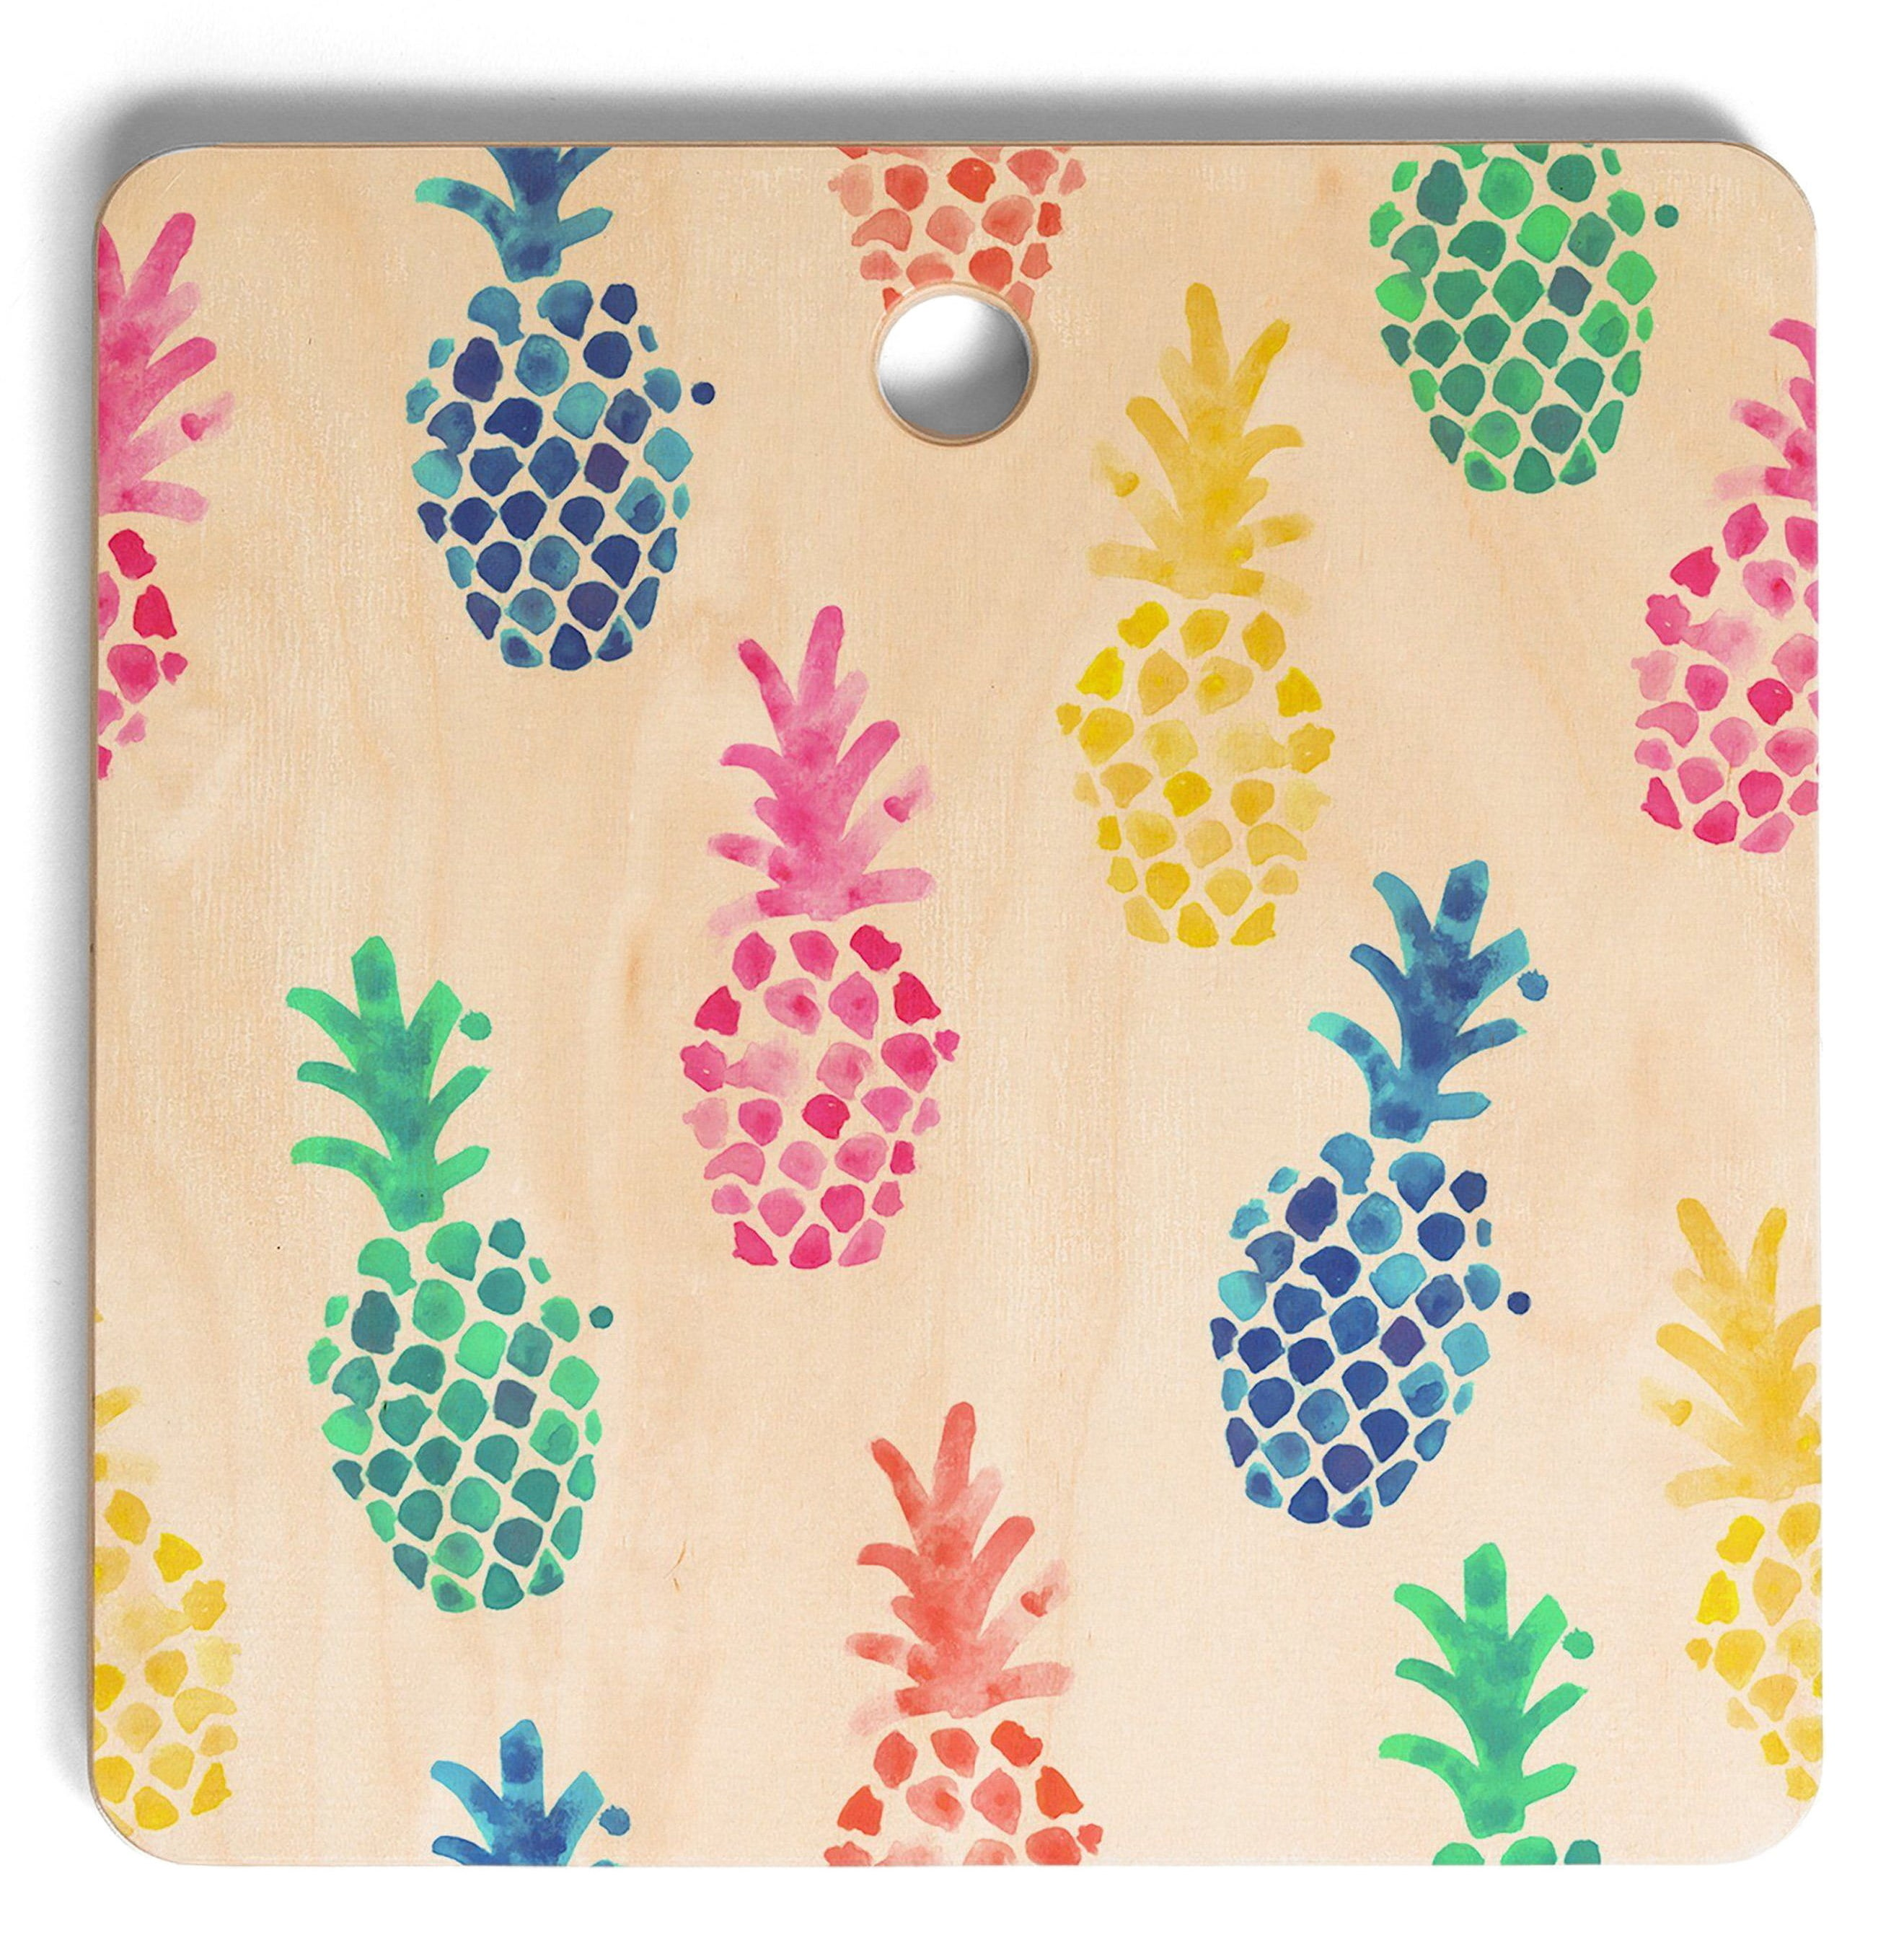 The Deny Designs Dash and Ash Pineapple Cutting Board